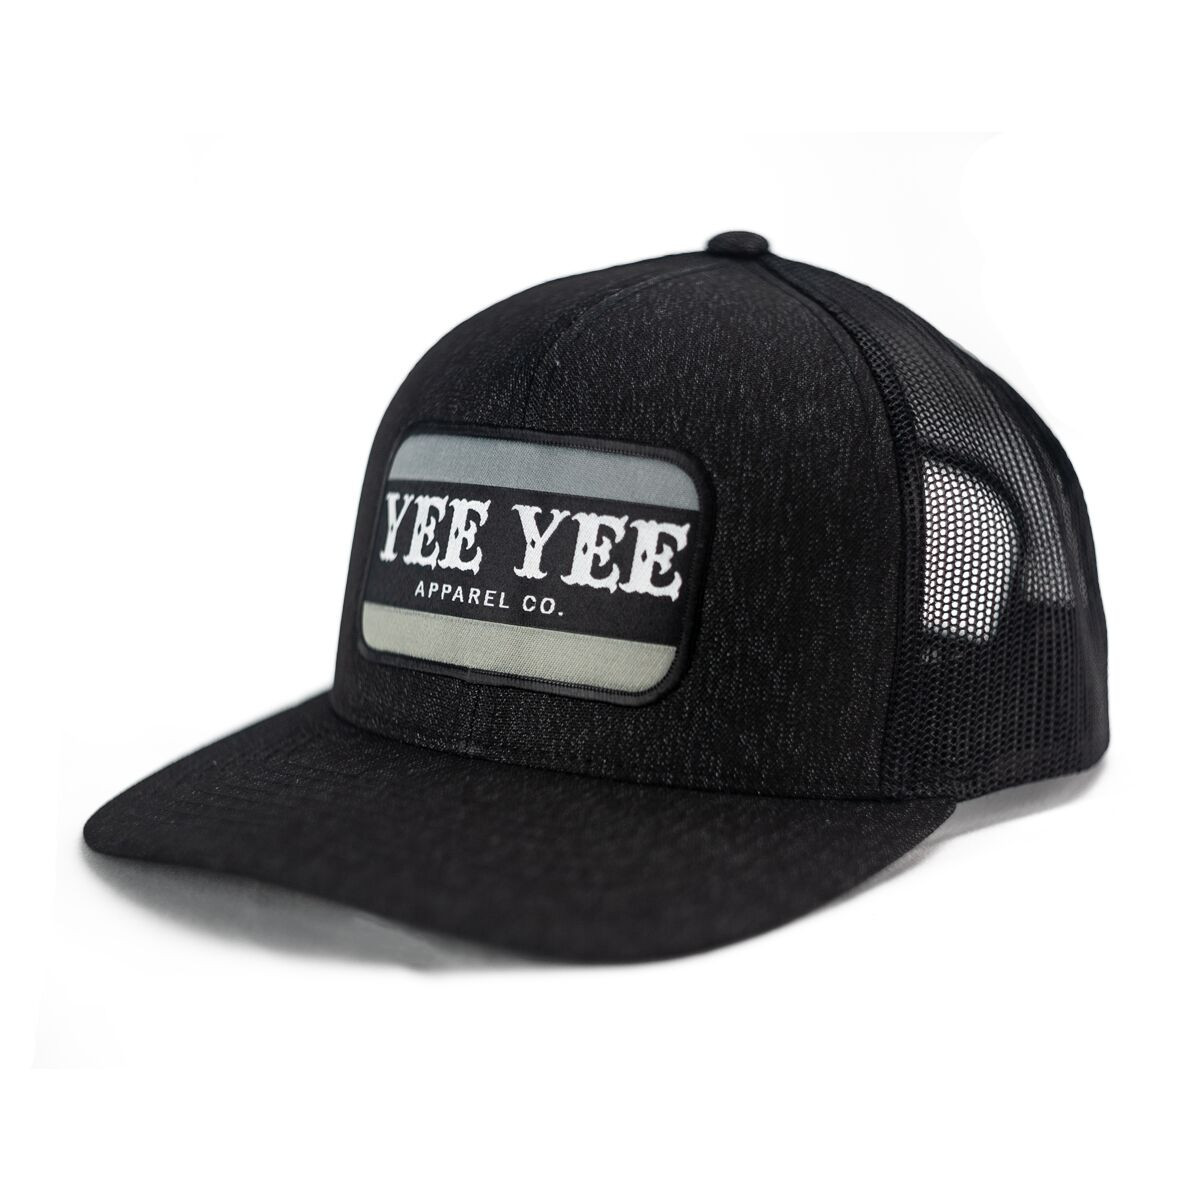 Charcoal/ Grey Yee Yee Apparel